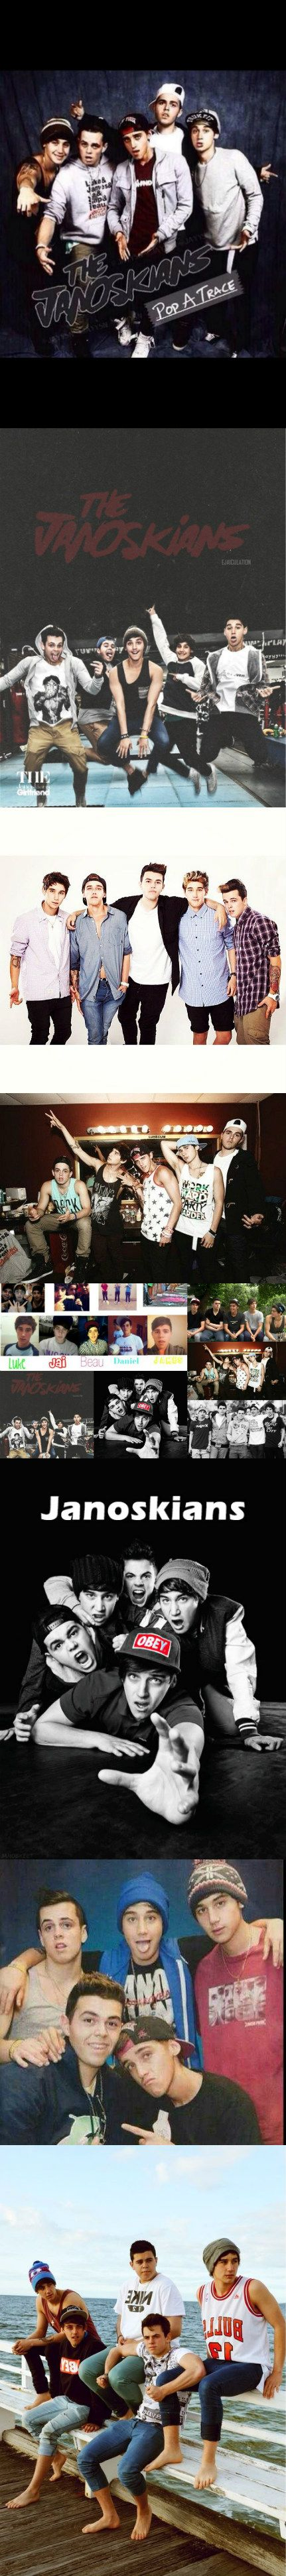 the janoskians how they have changed